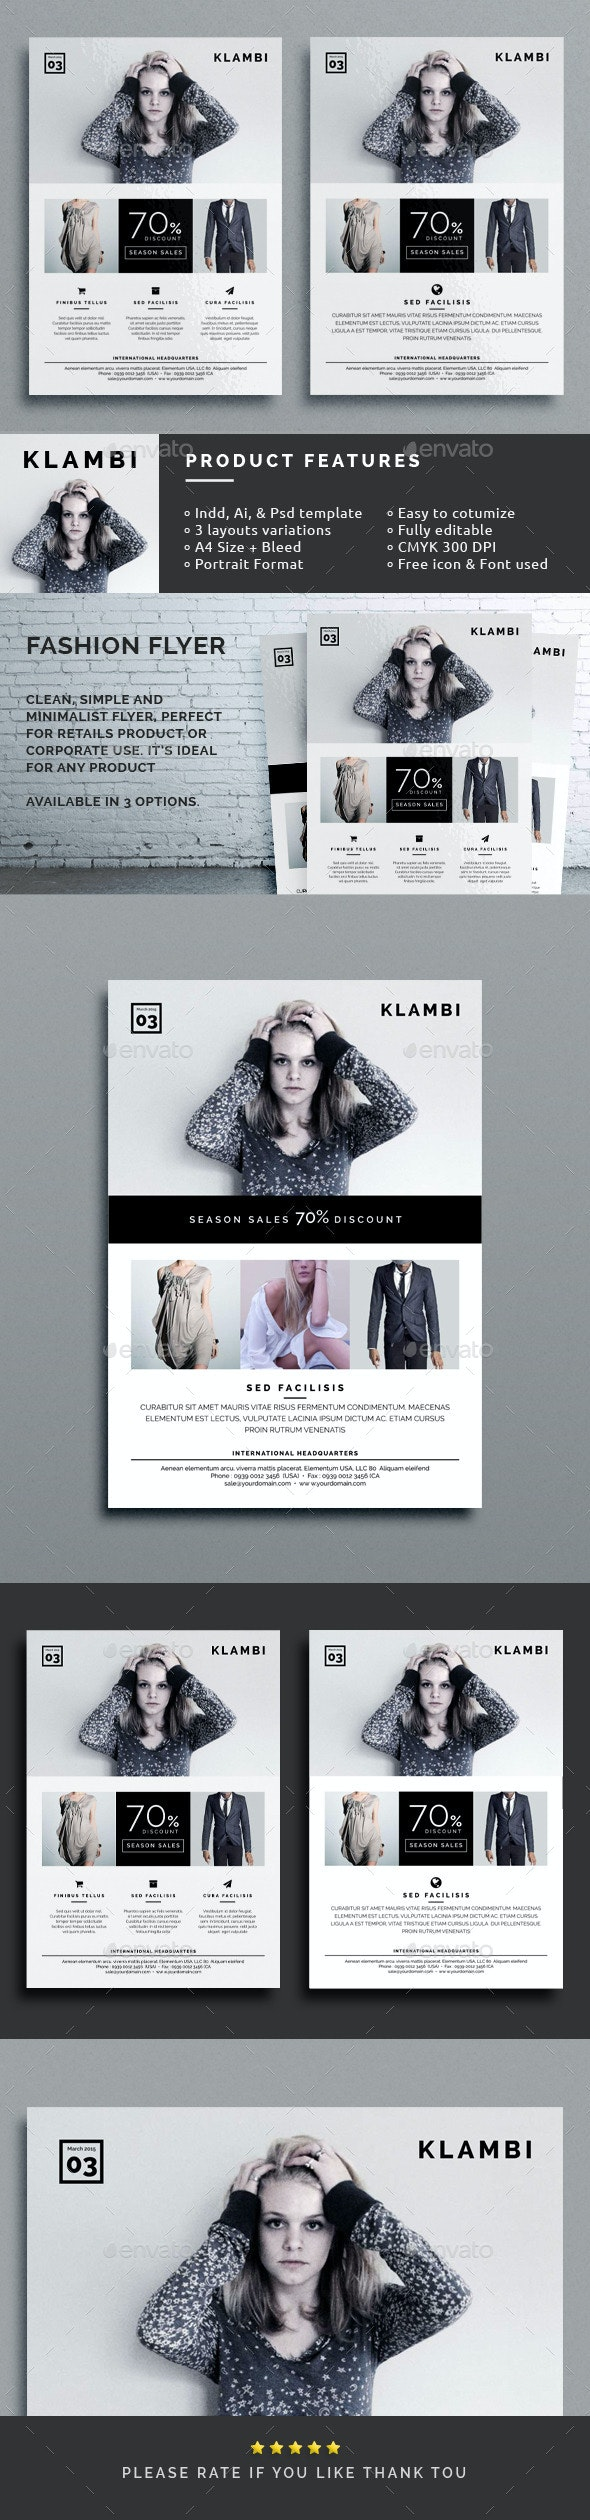 Klambi Fashion Flyer  - Corporate Flyers